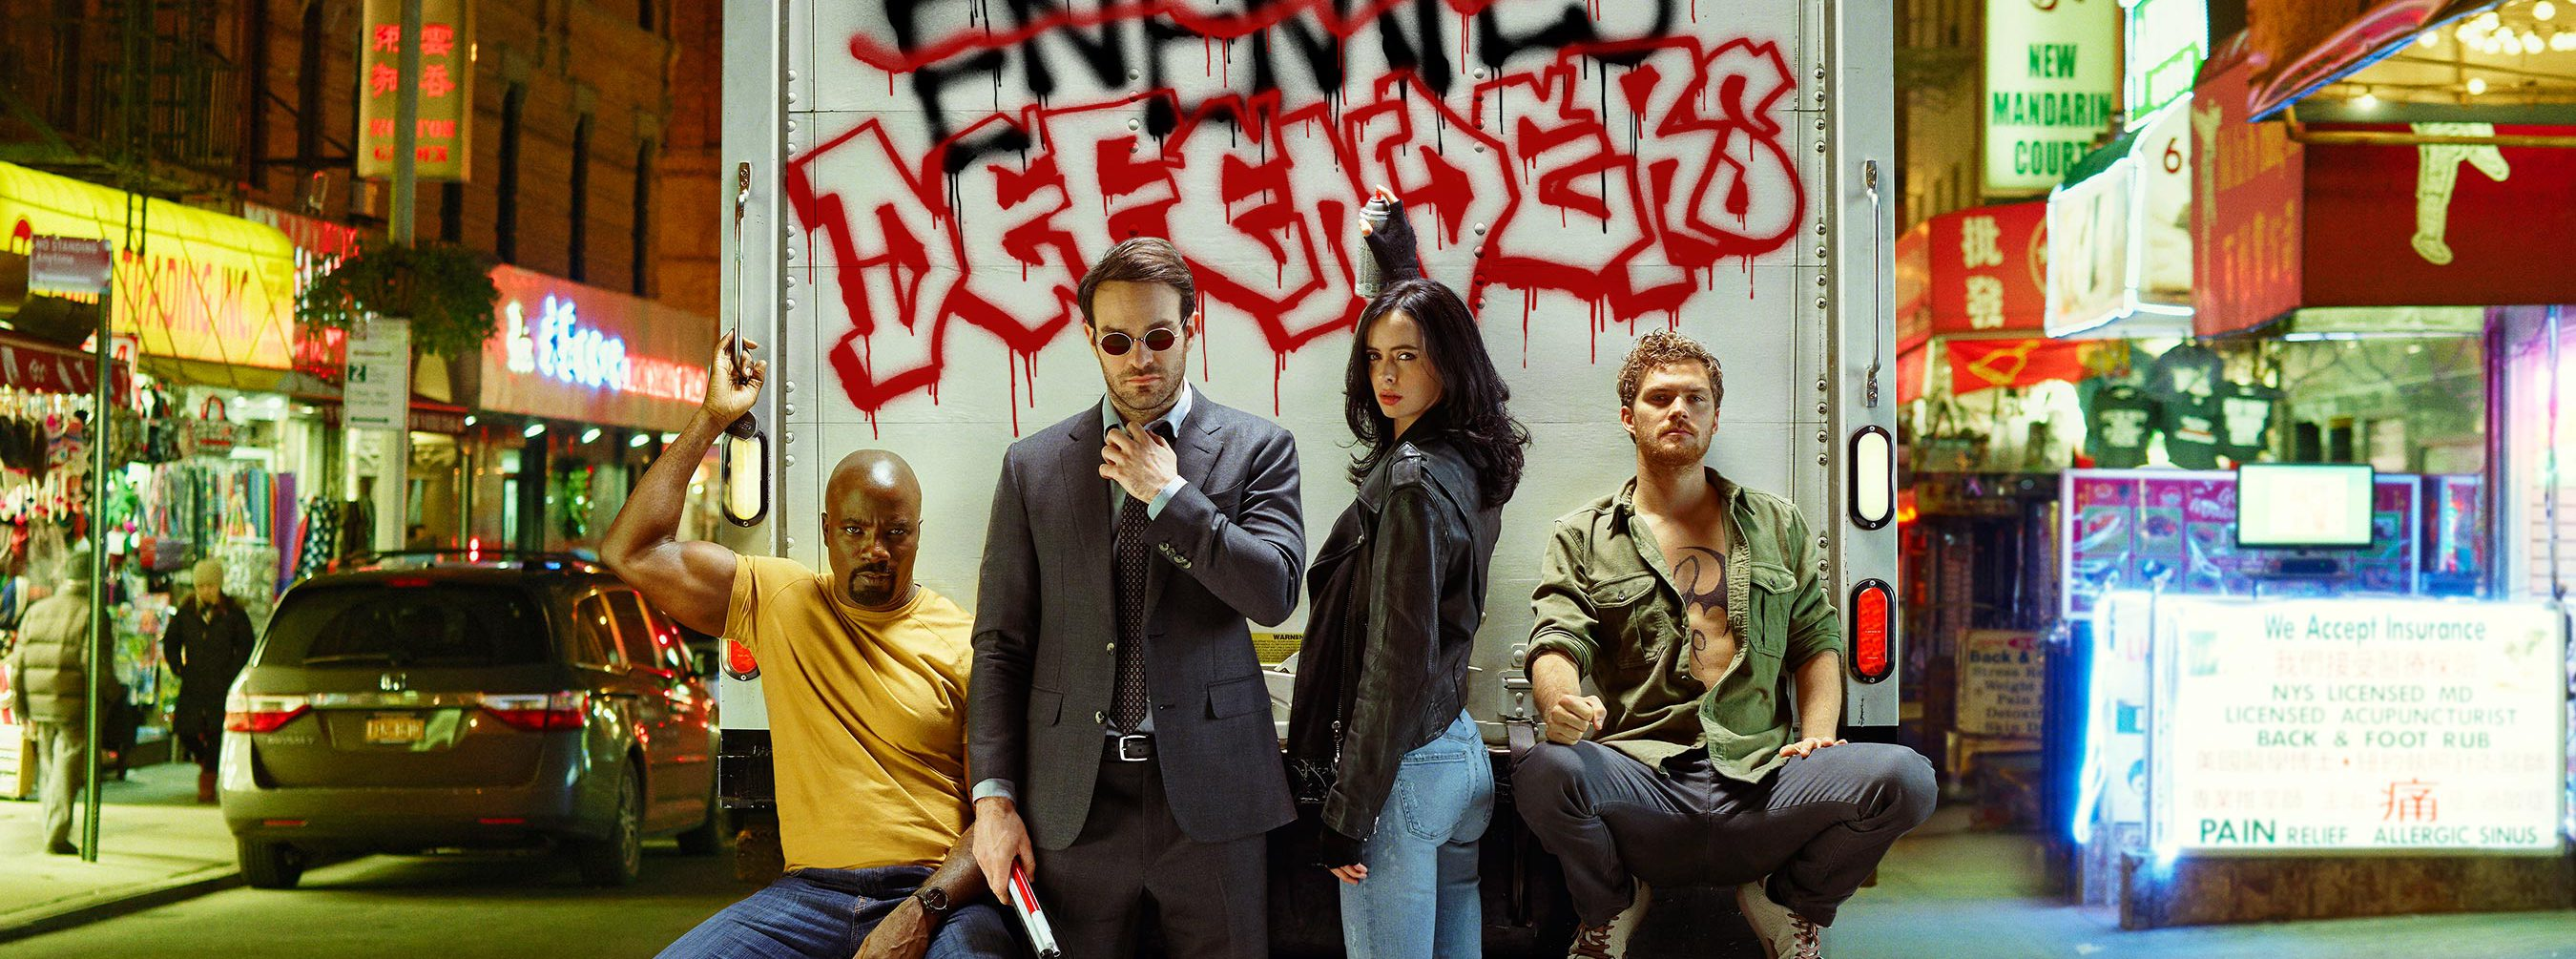 'The Defenders' Dinner Menu Is All About The Hand